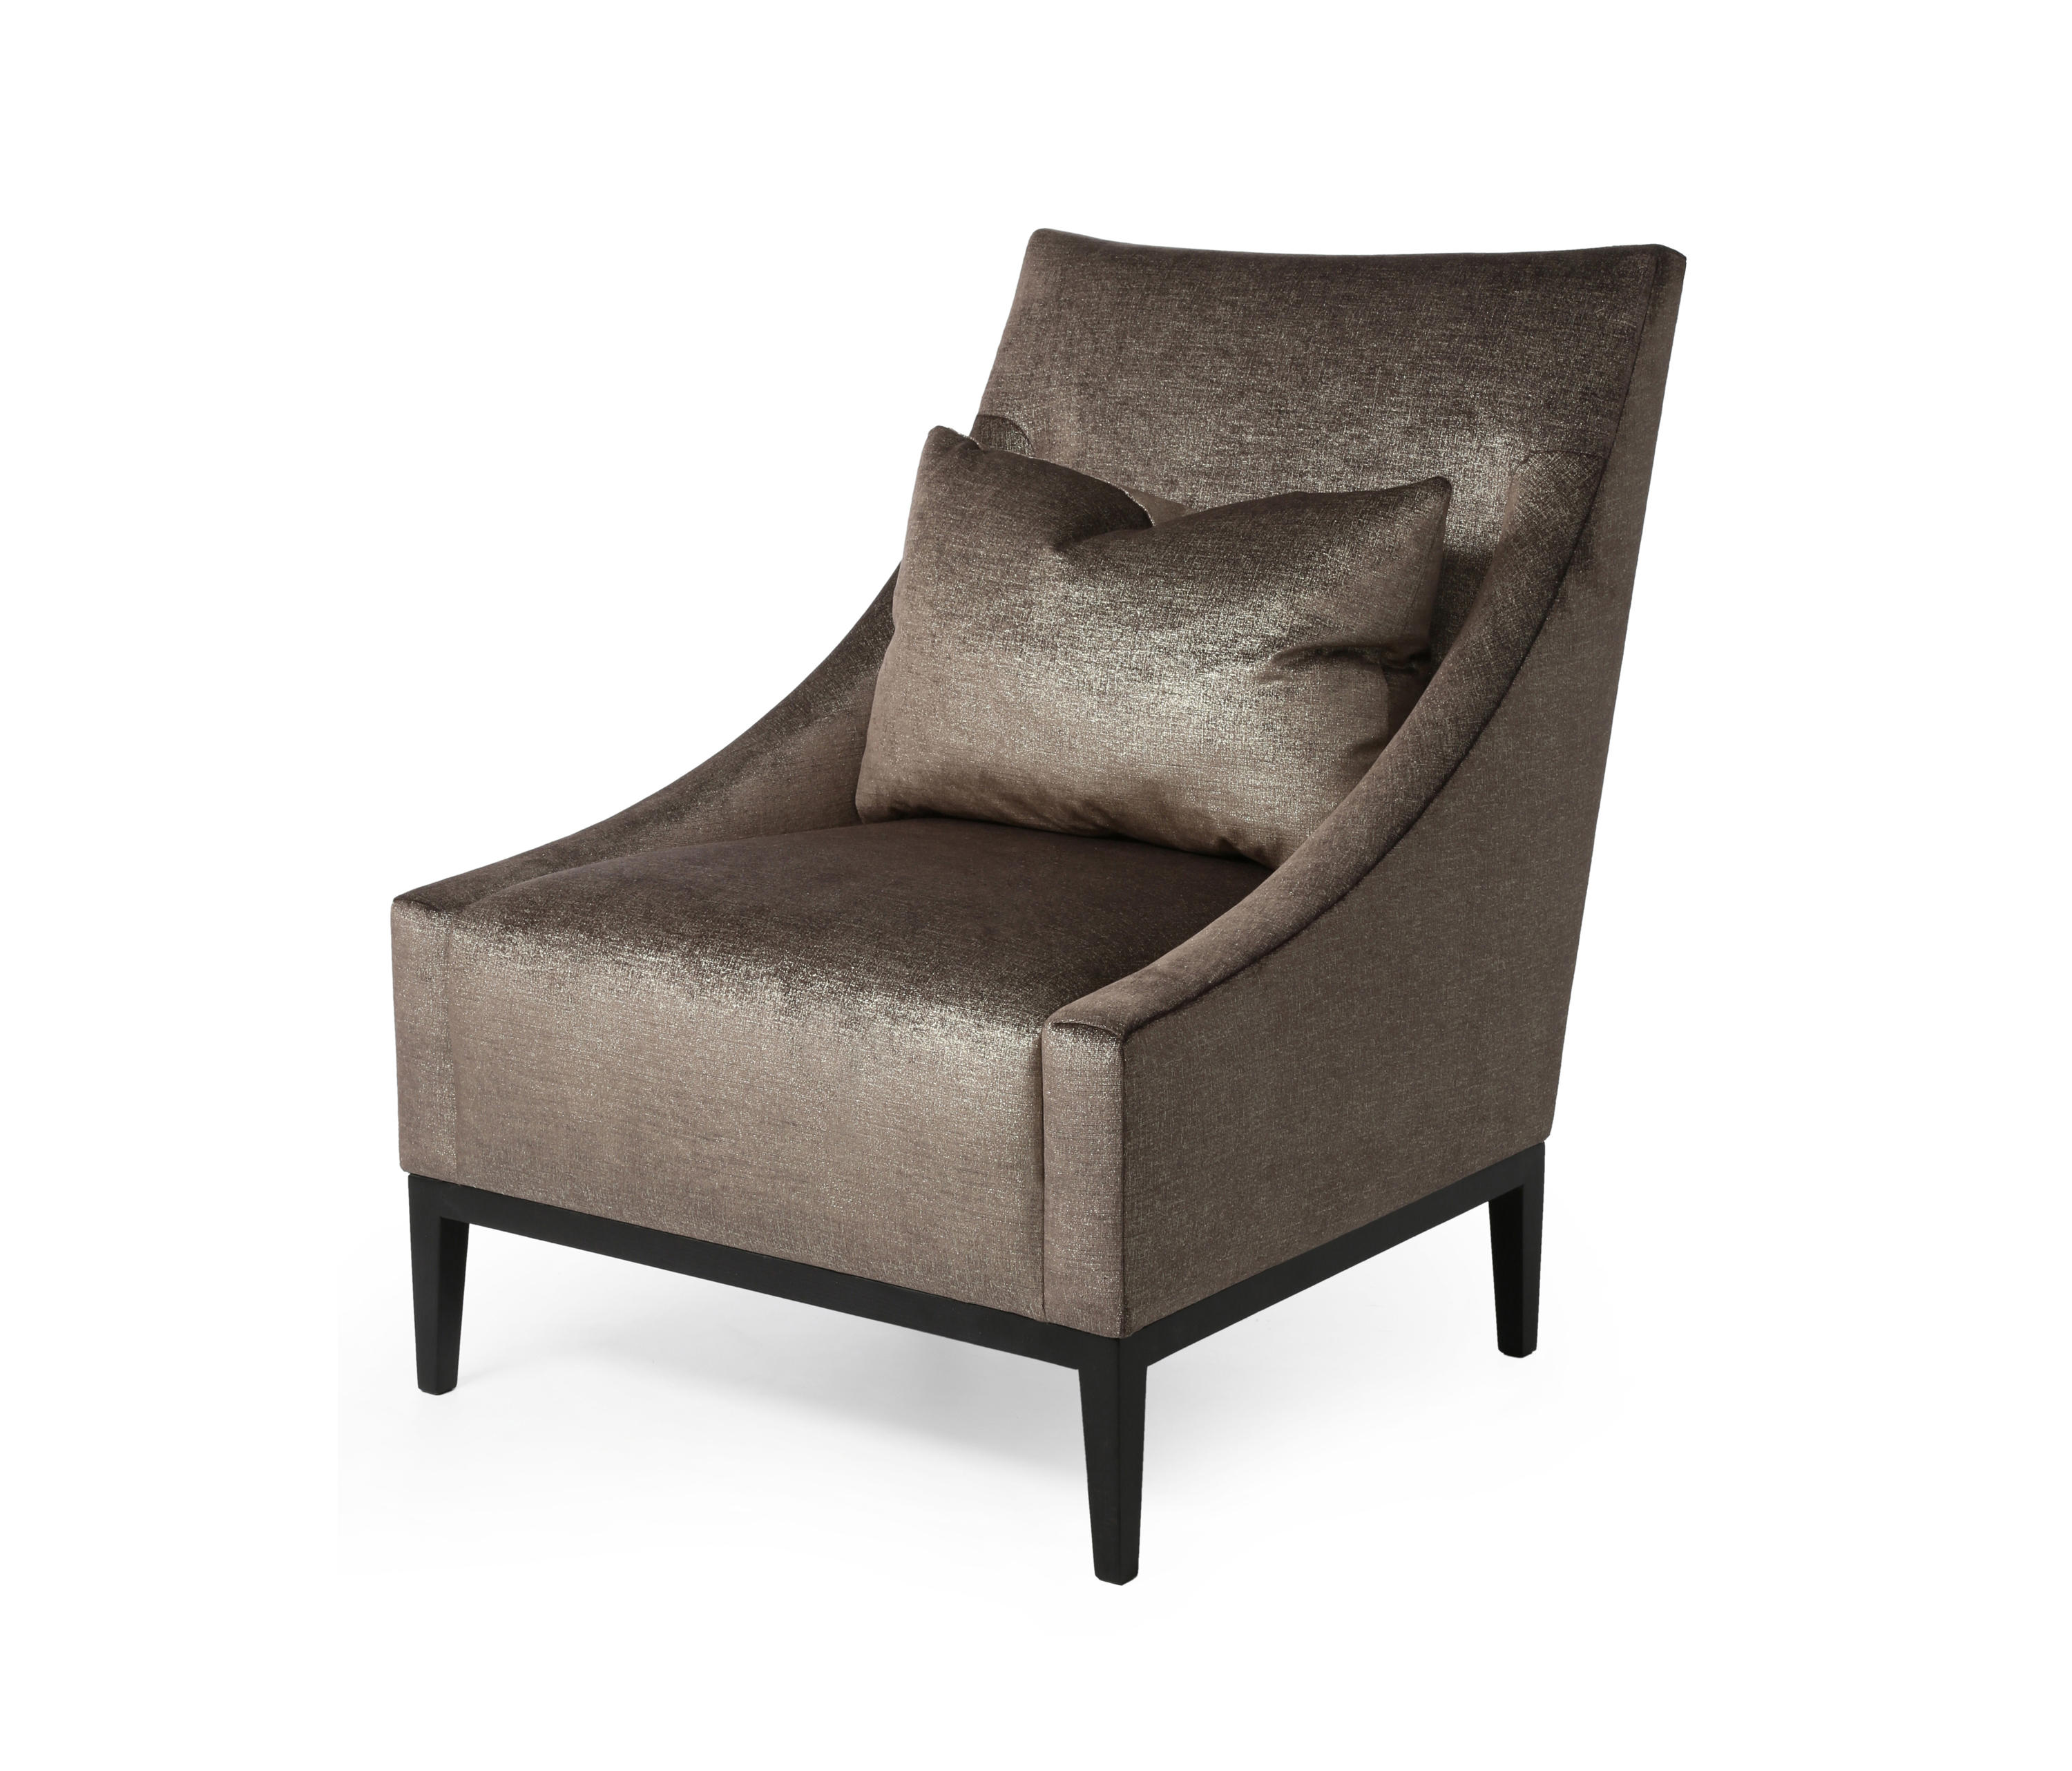 VALERA OCCASIONAL CHAIR Lounge chairs from The Sofa & Chair